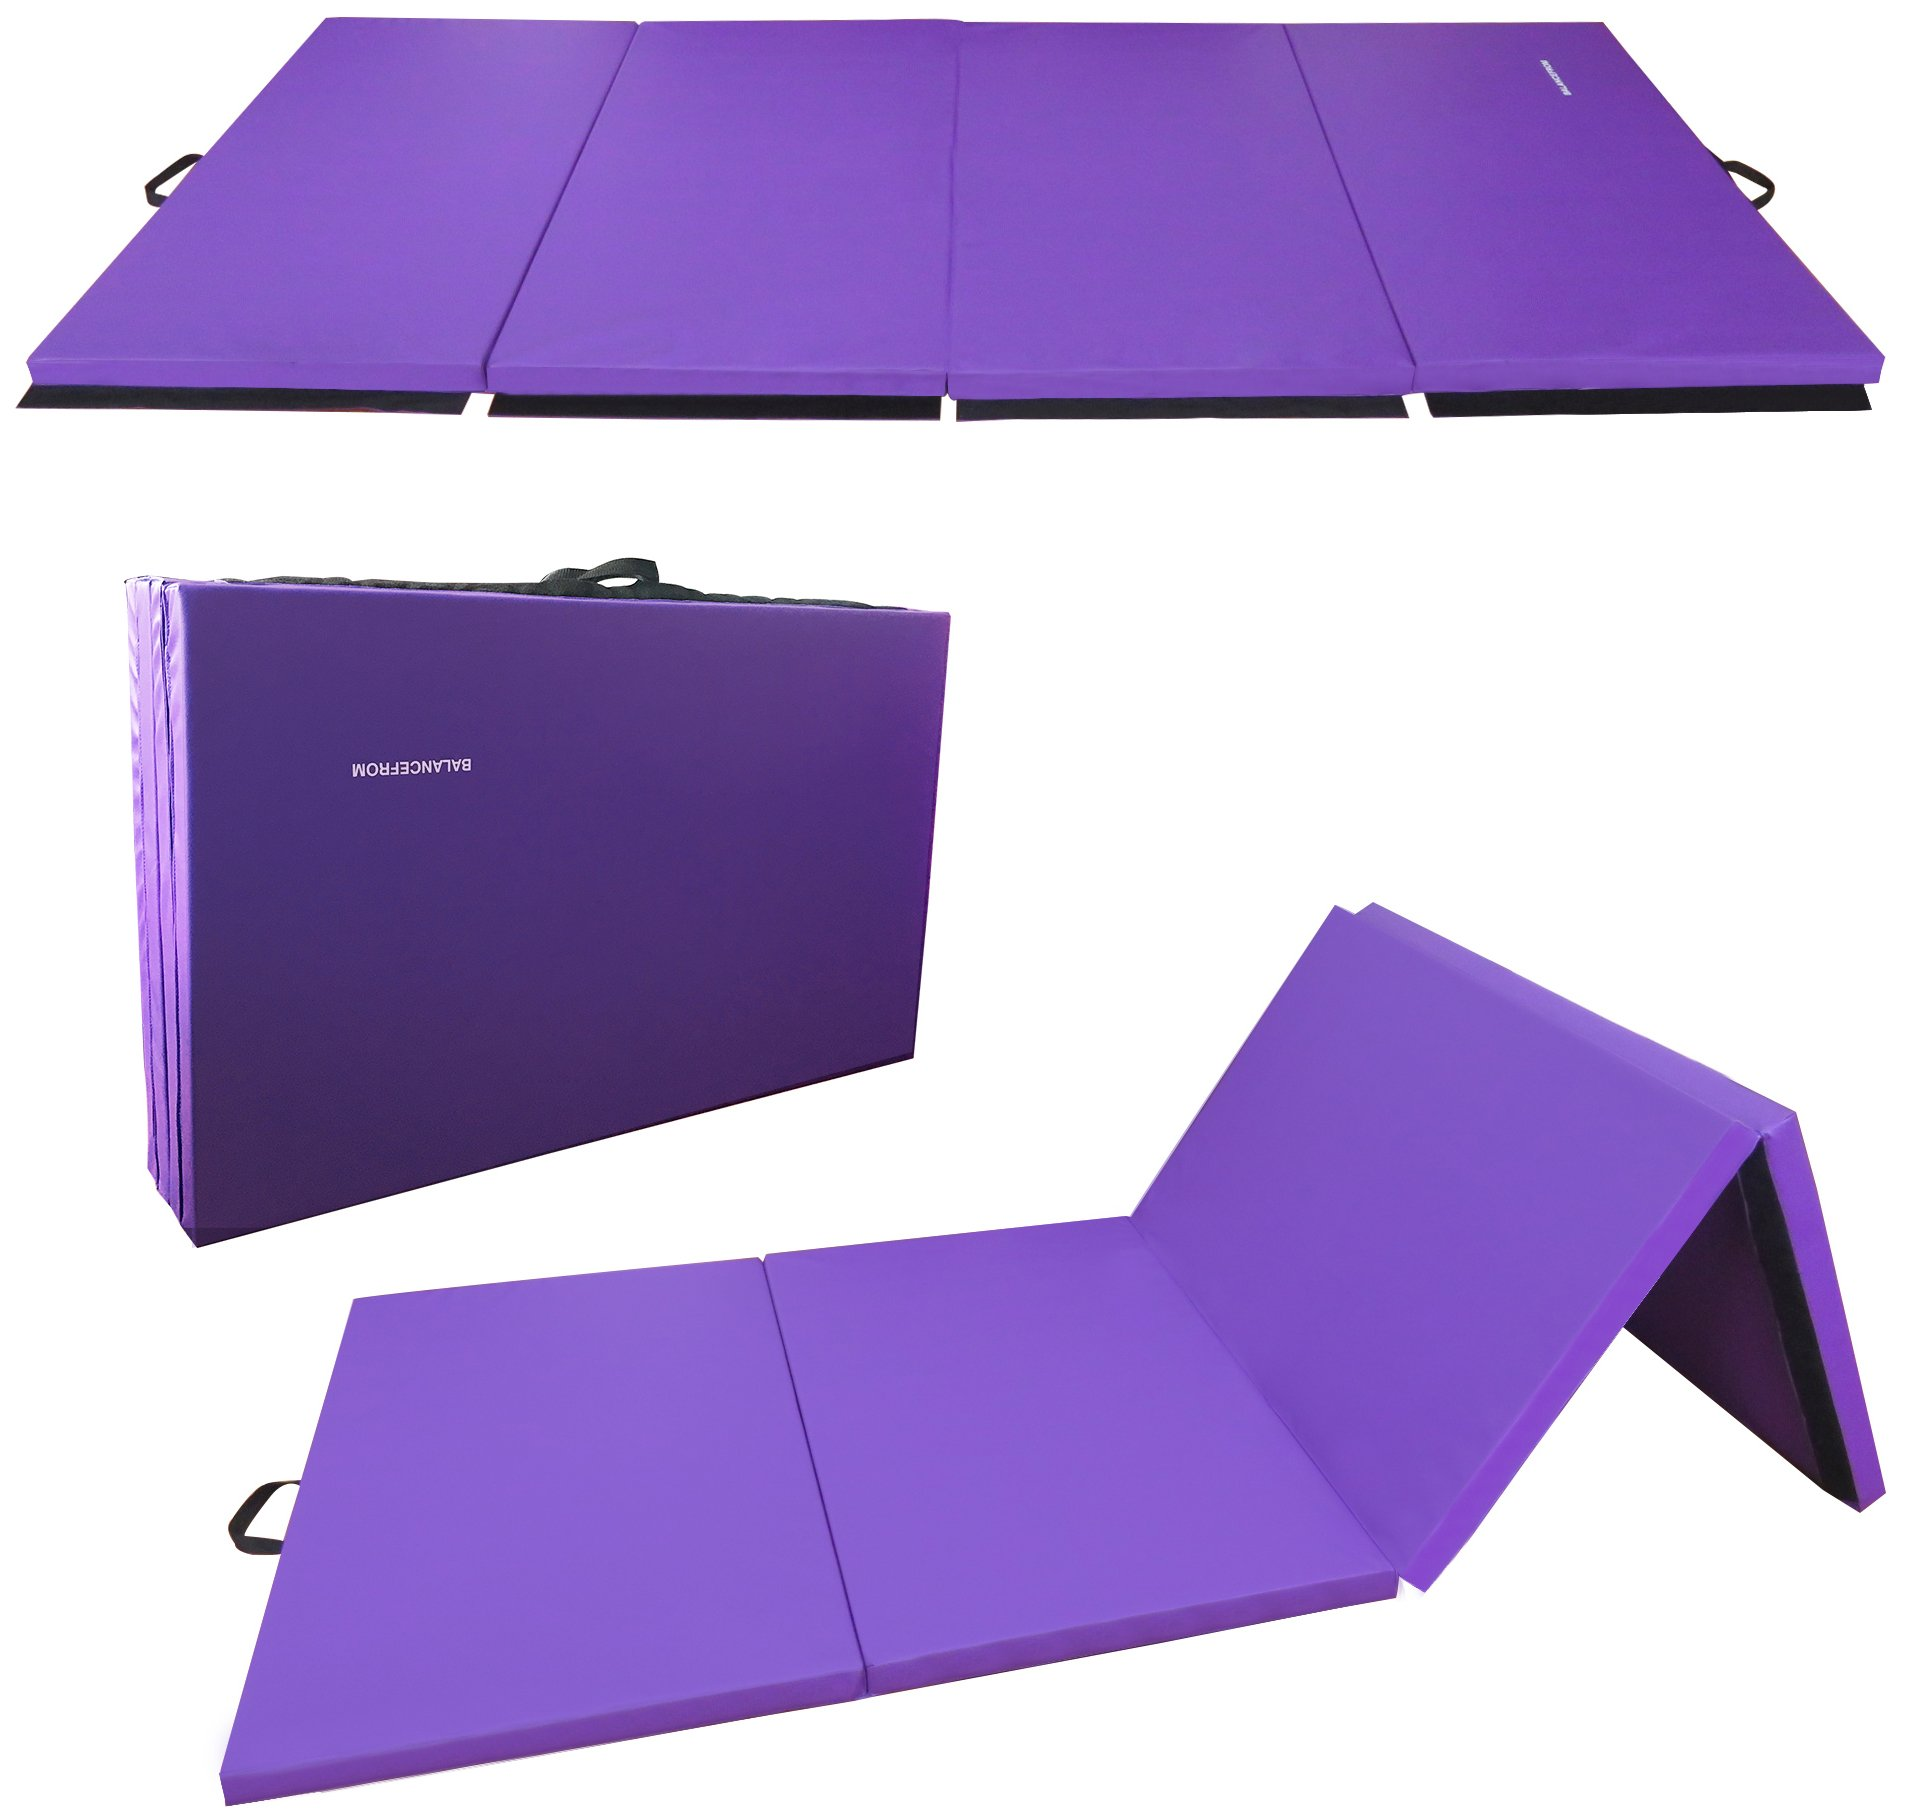 BalanceFrom BFGR-01PP All-Purpose Extra Thick High Density Anti-Tear Gymnastics Folding Exercise Aerobics Mats, 4' x 10' x 2''